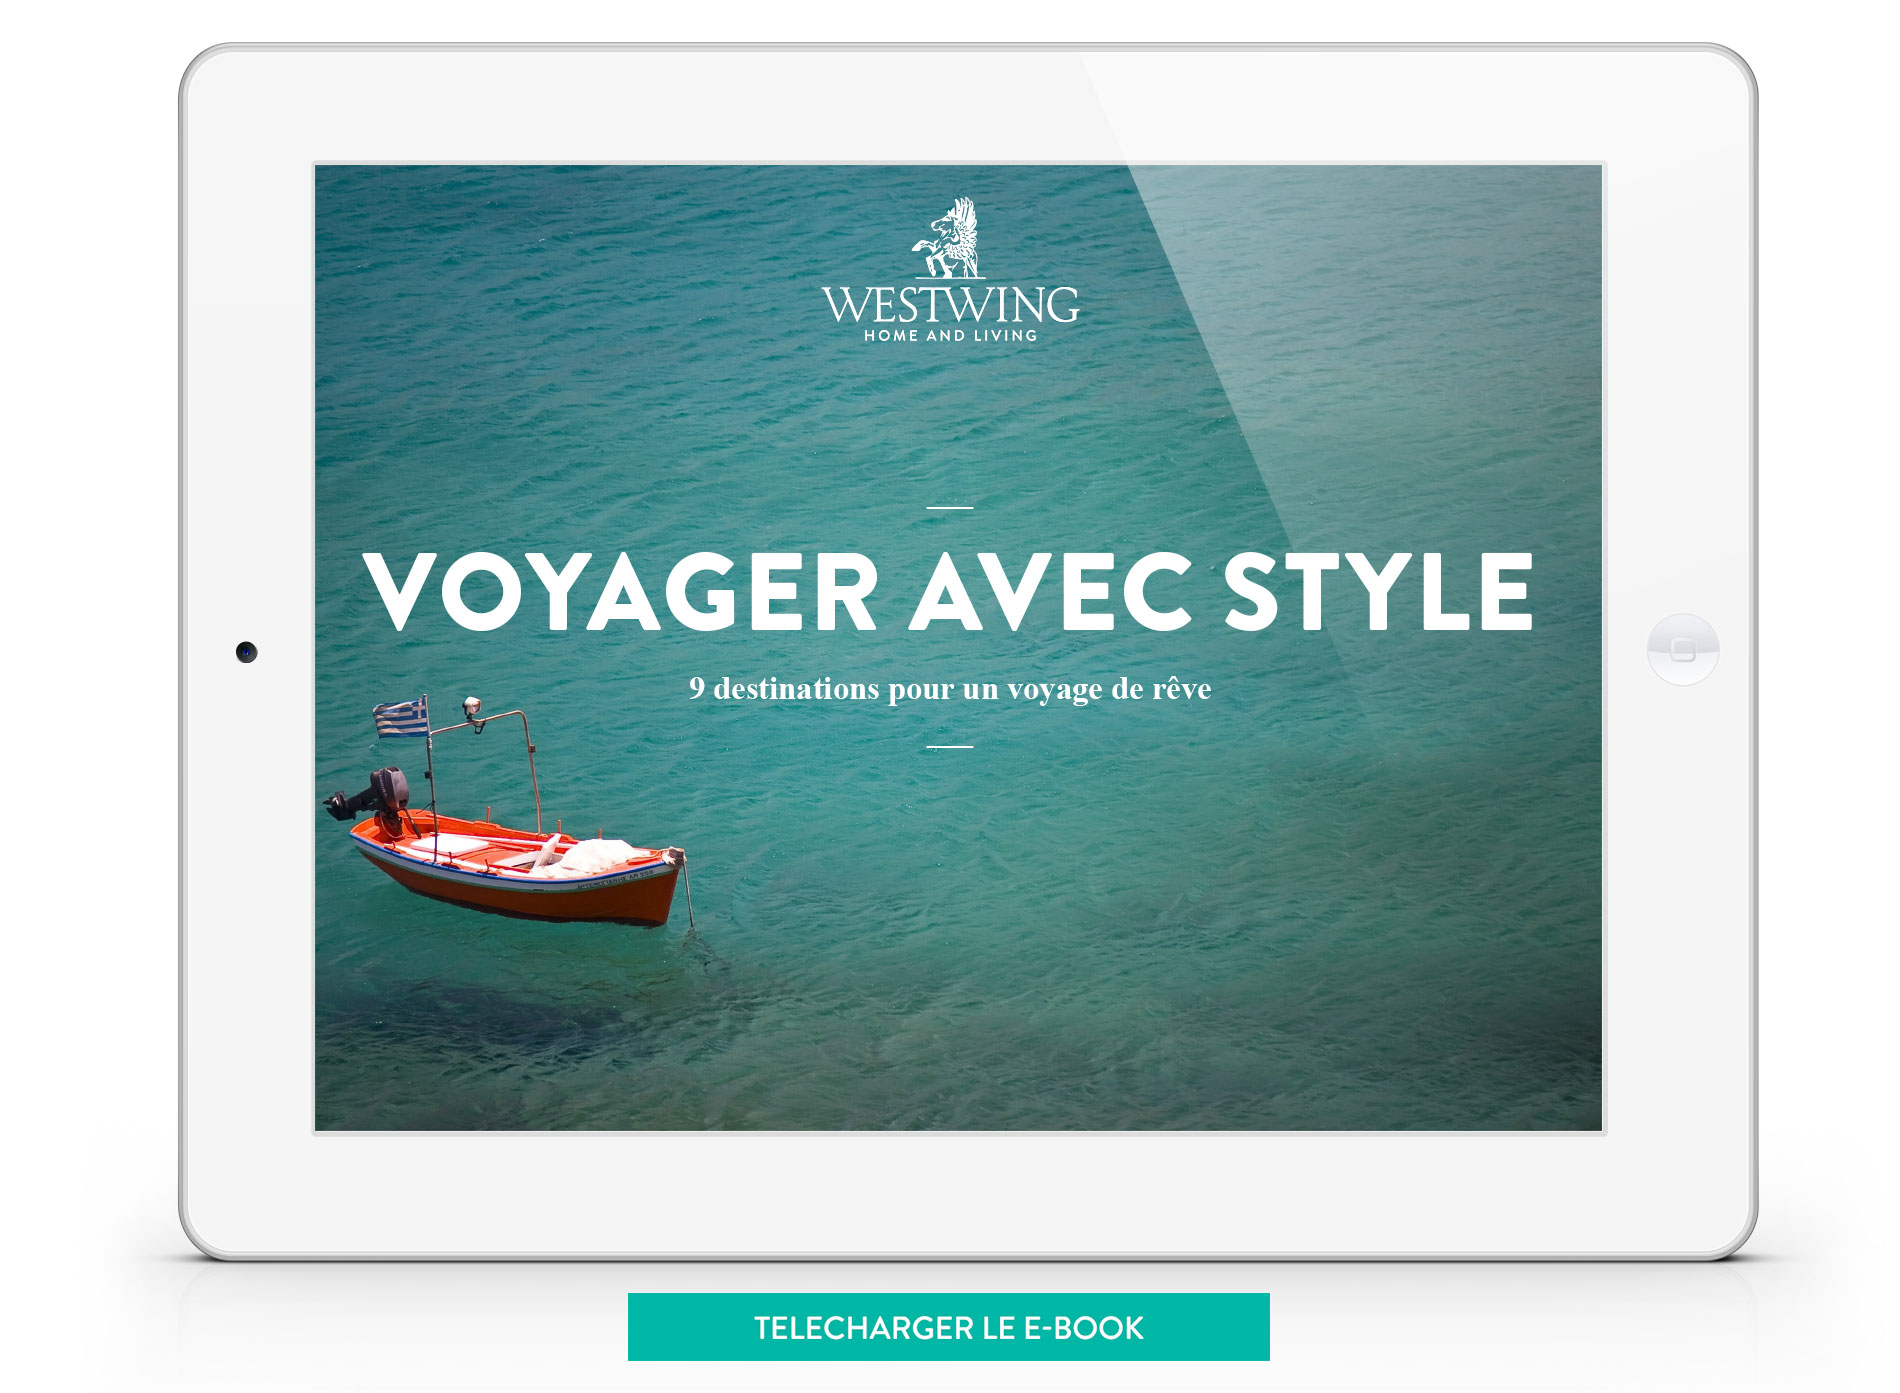 Voyager avec style